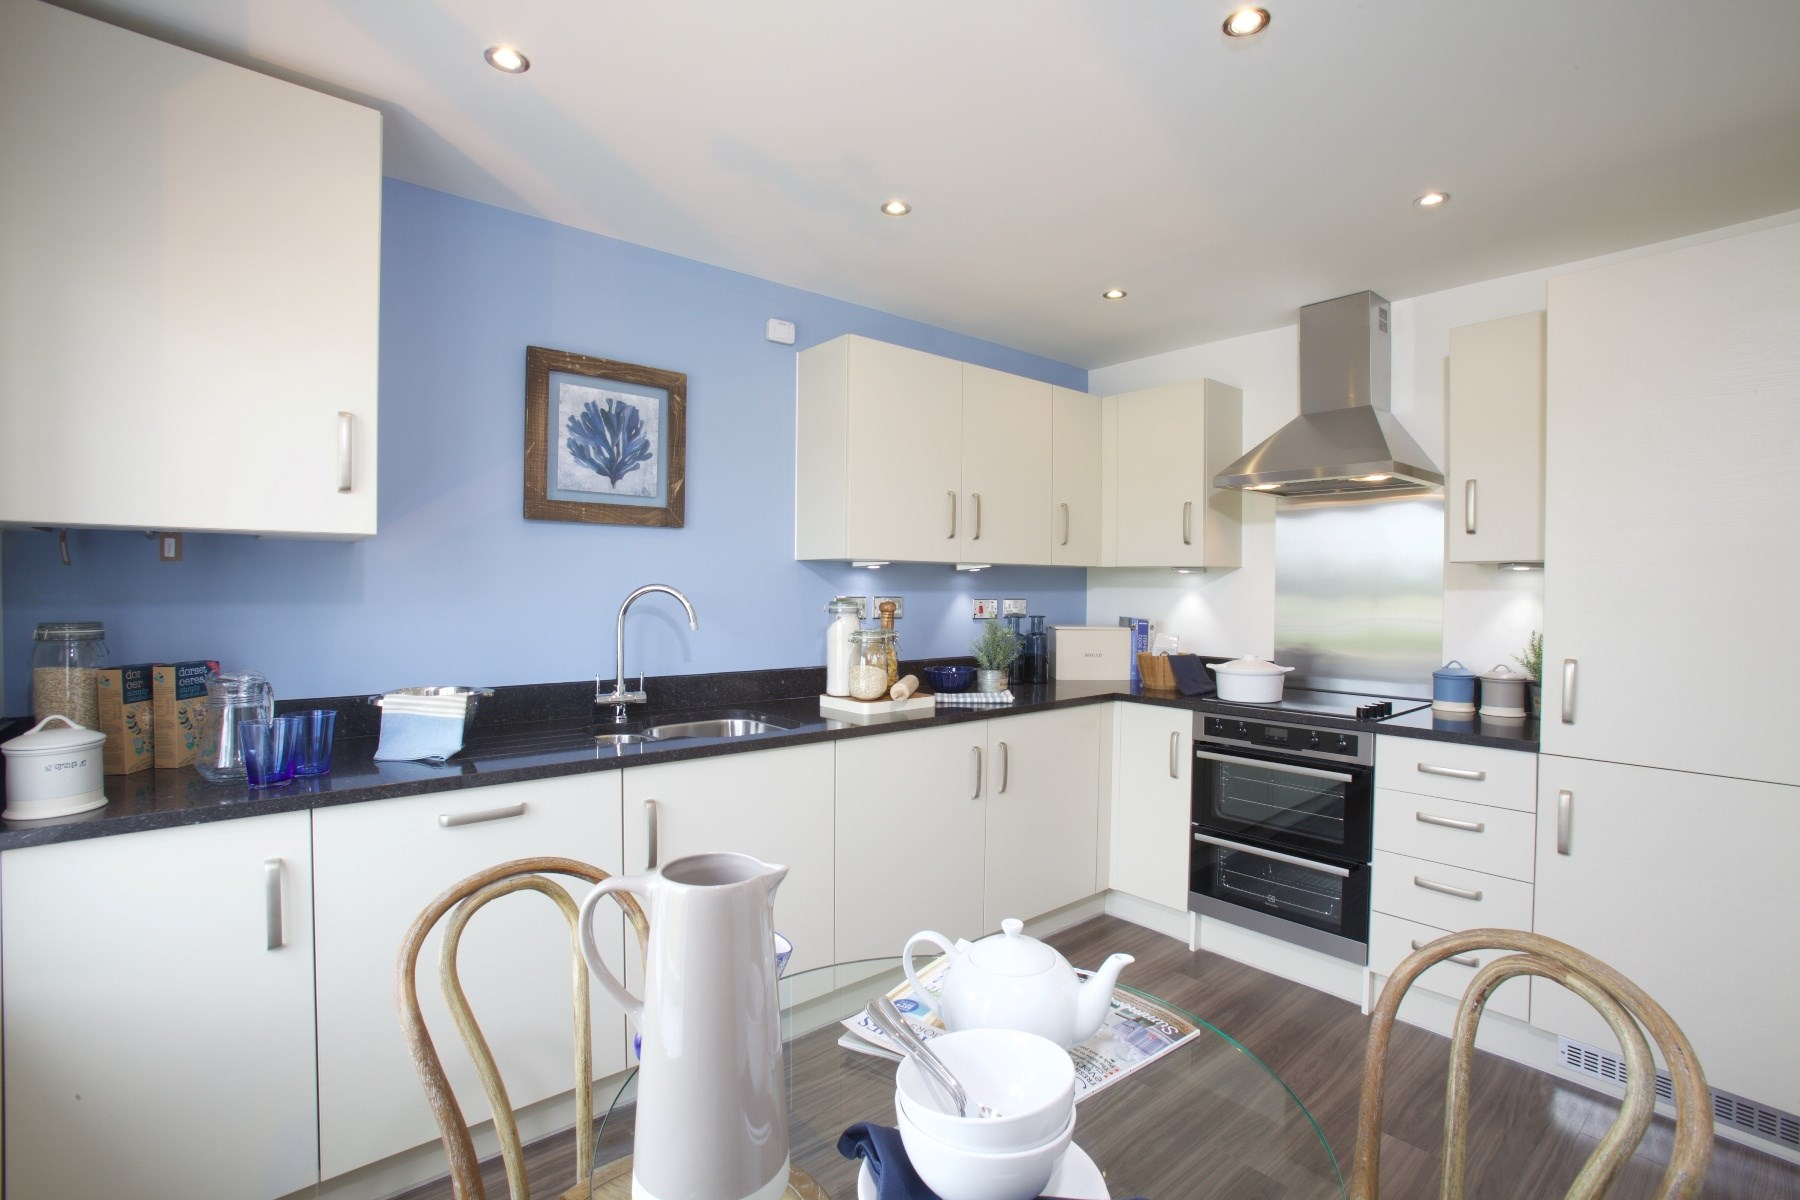 Kings Down showhome Crofton - Kitchen